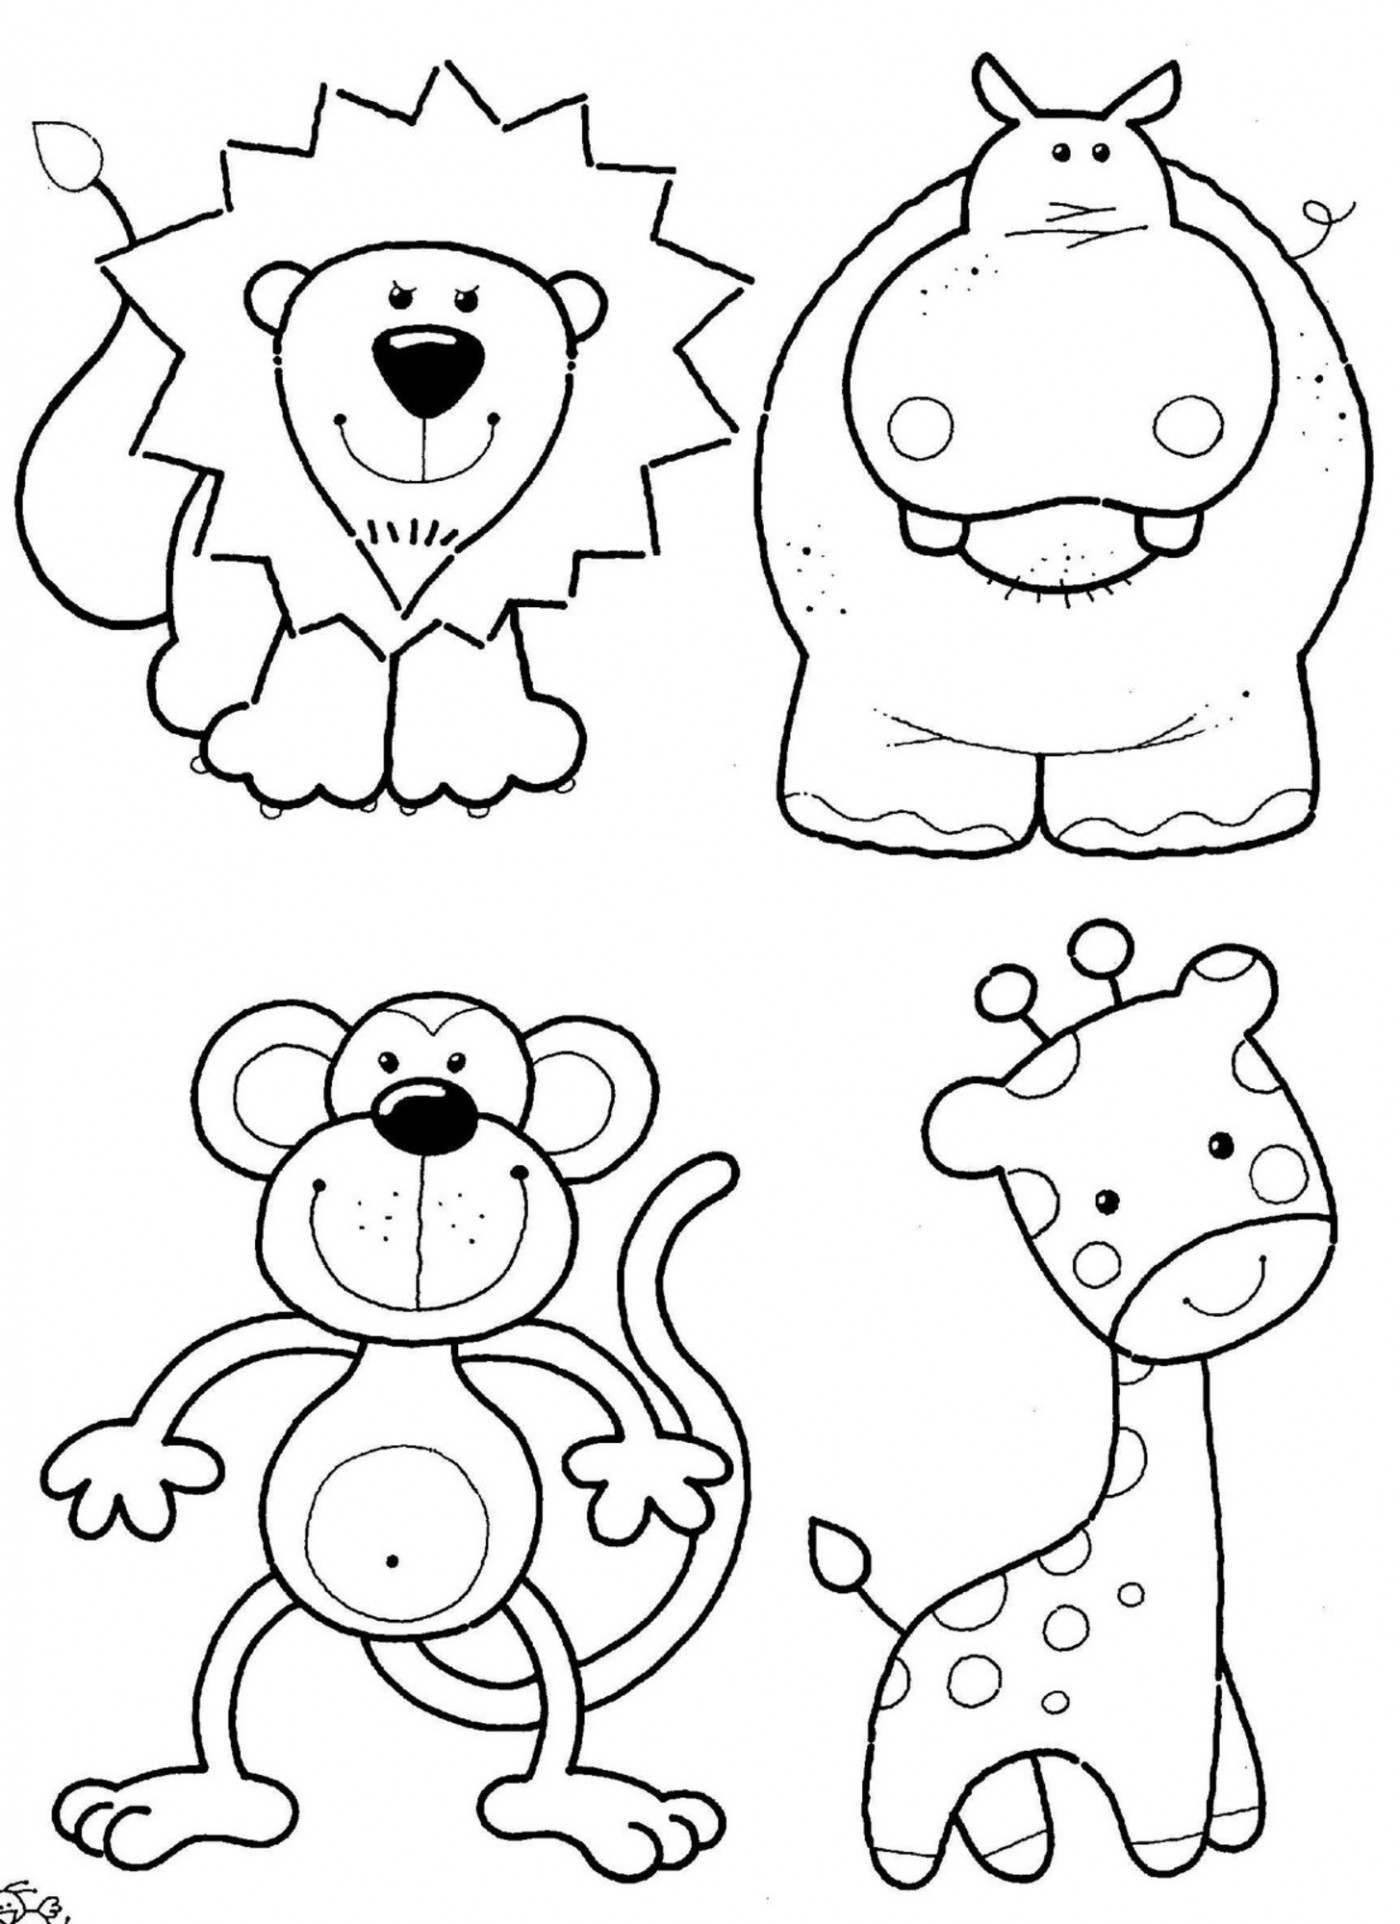 Animals coloring pages for kids printable - Download Animal Coloring Pages 14 Print